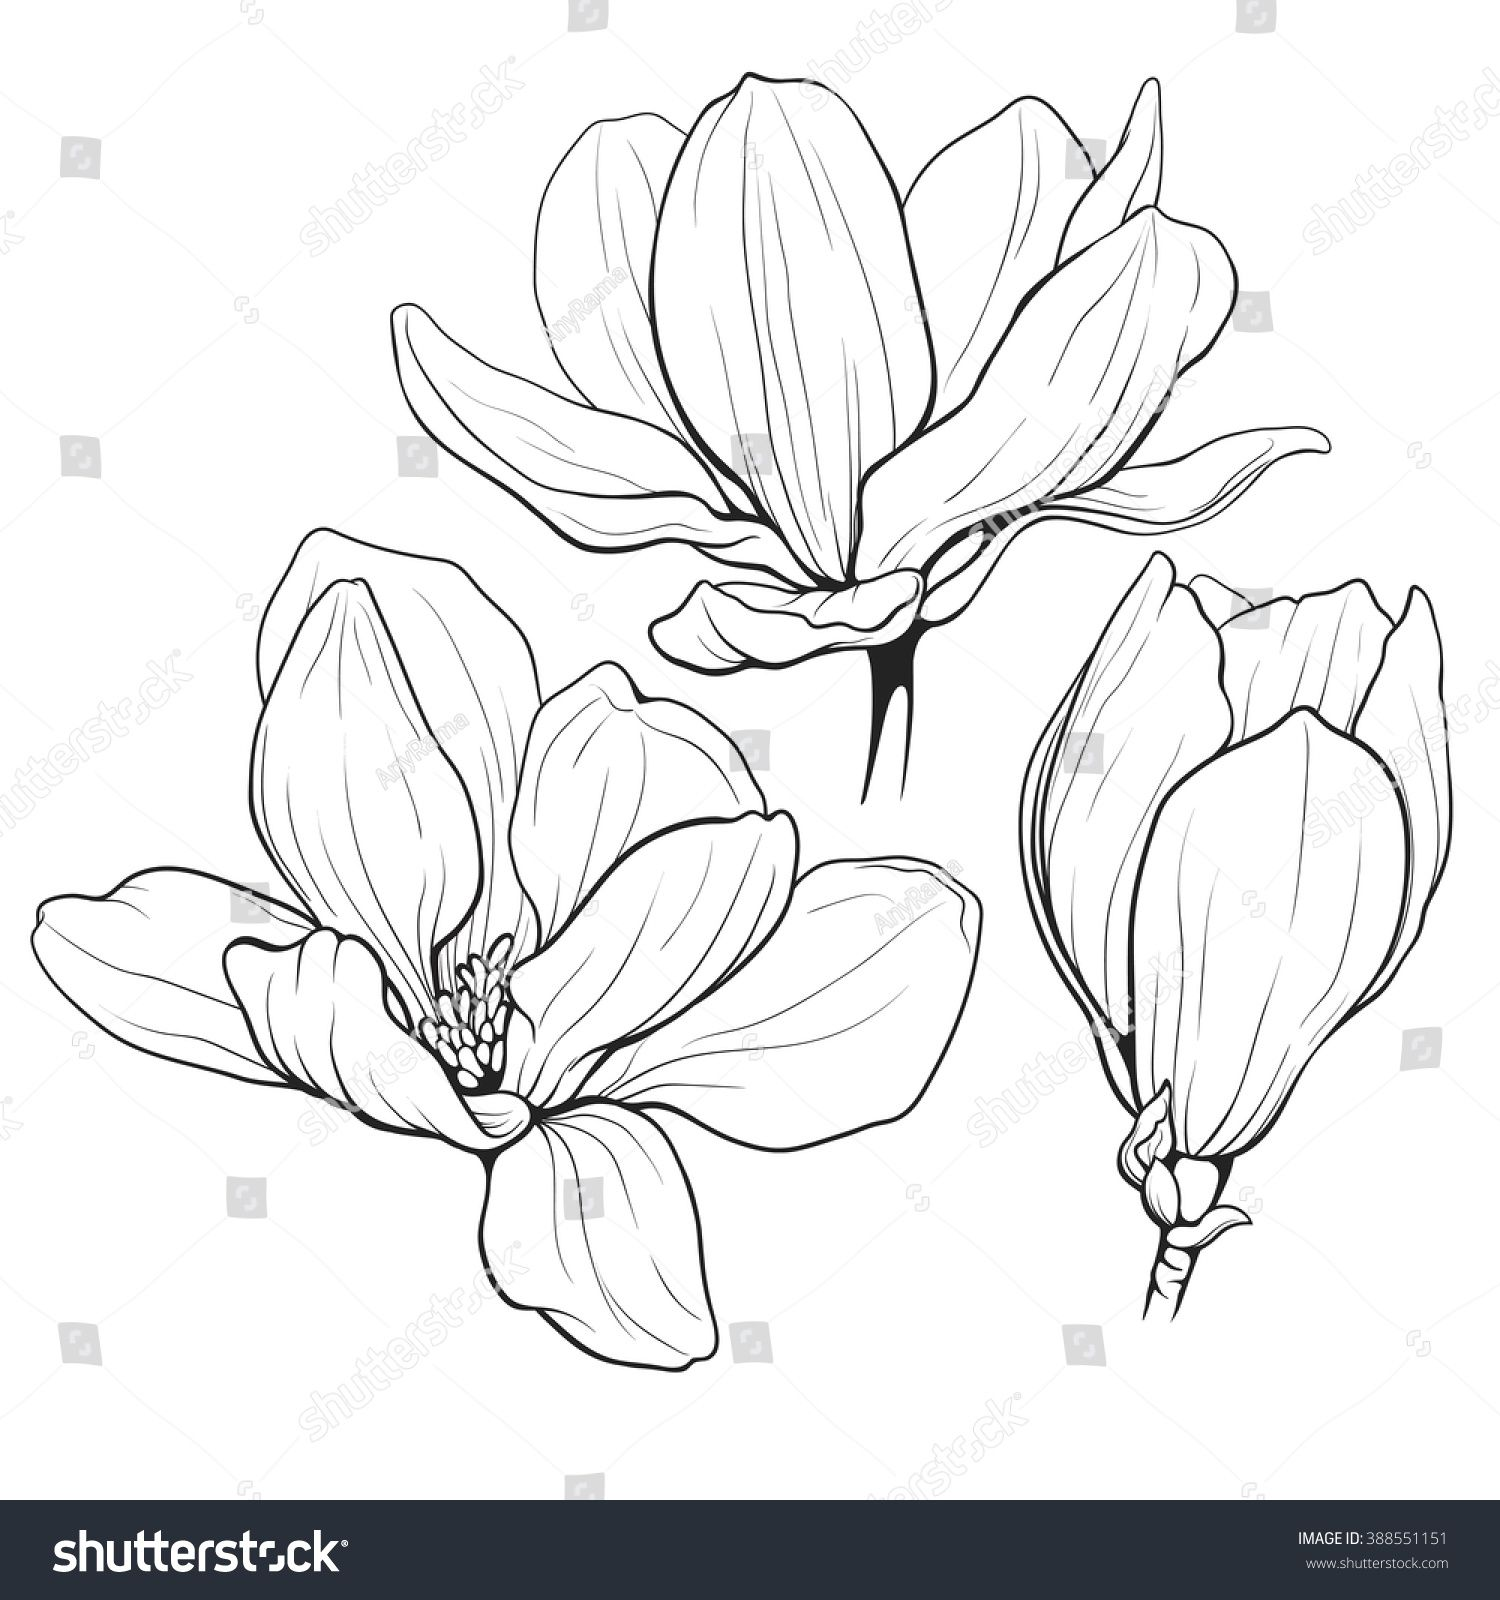 Black And White Line Illustration Of Magnolia Flowers On A White Background Flower Line Drawings Flower Drawing Flower Sketches